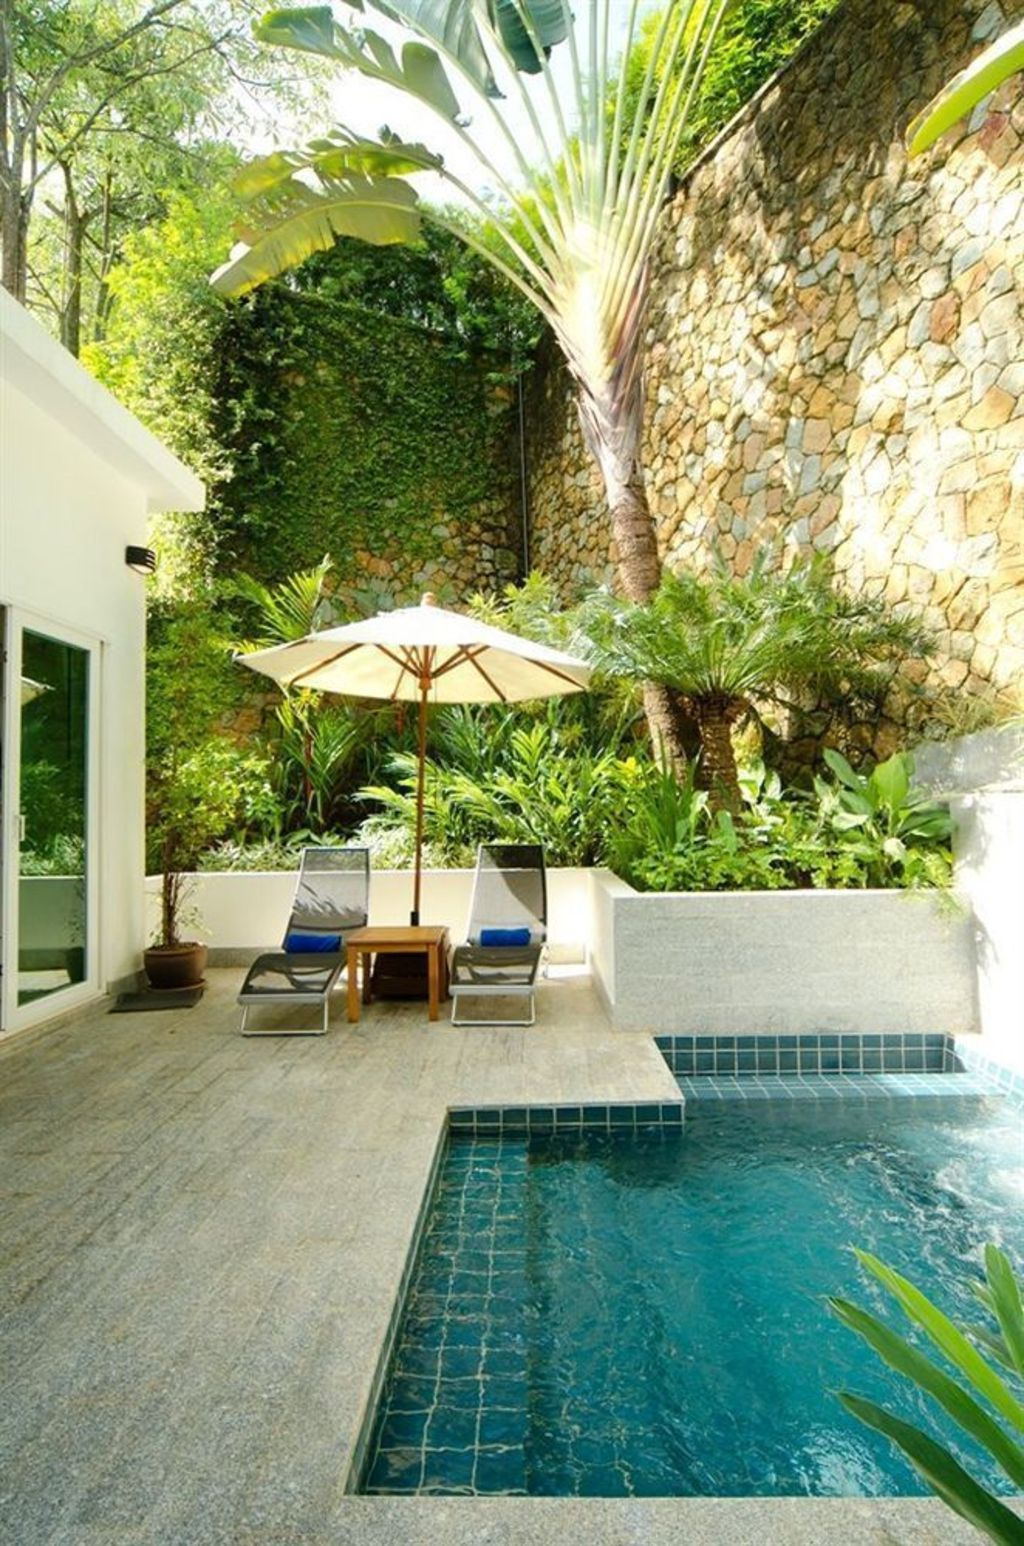 Small swimming pools made for small spaces and tight budgets Part 20